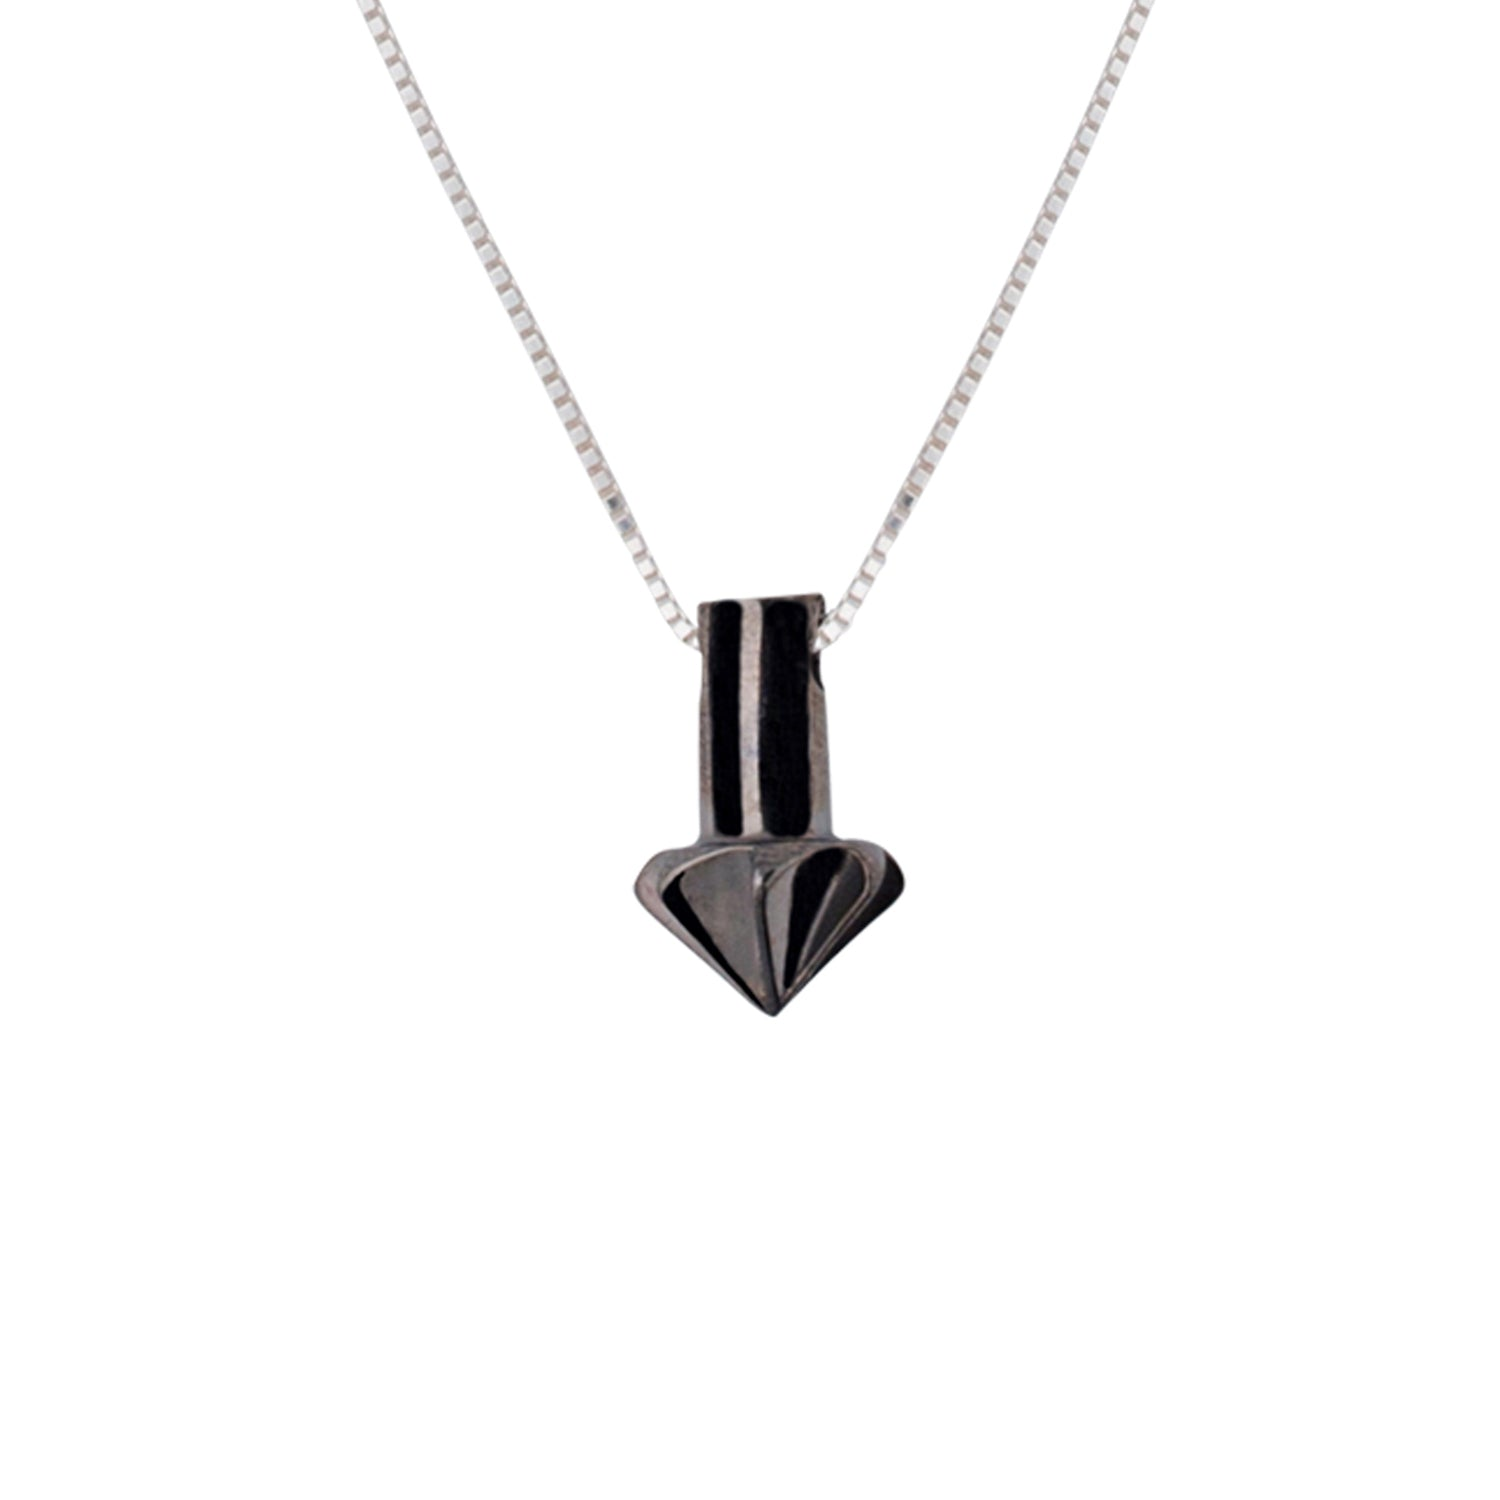 Edge Only Countersink Pendant in Black Rhodium